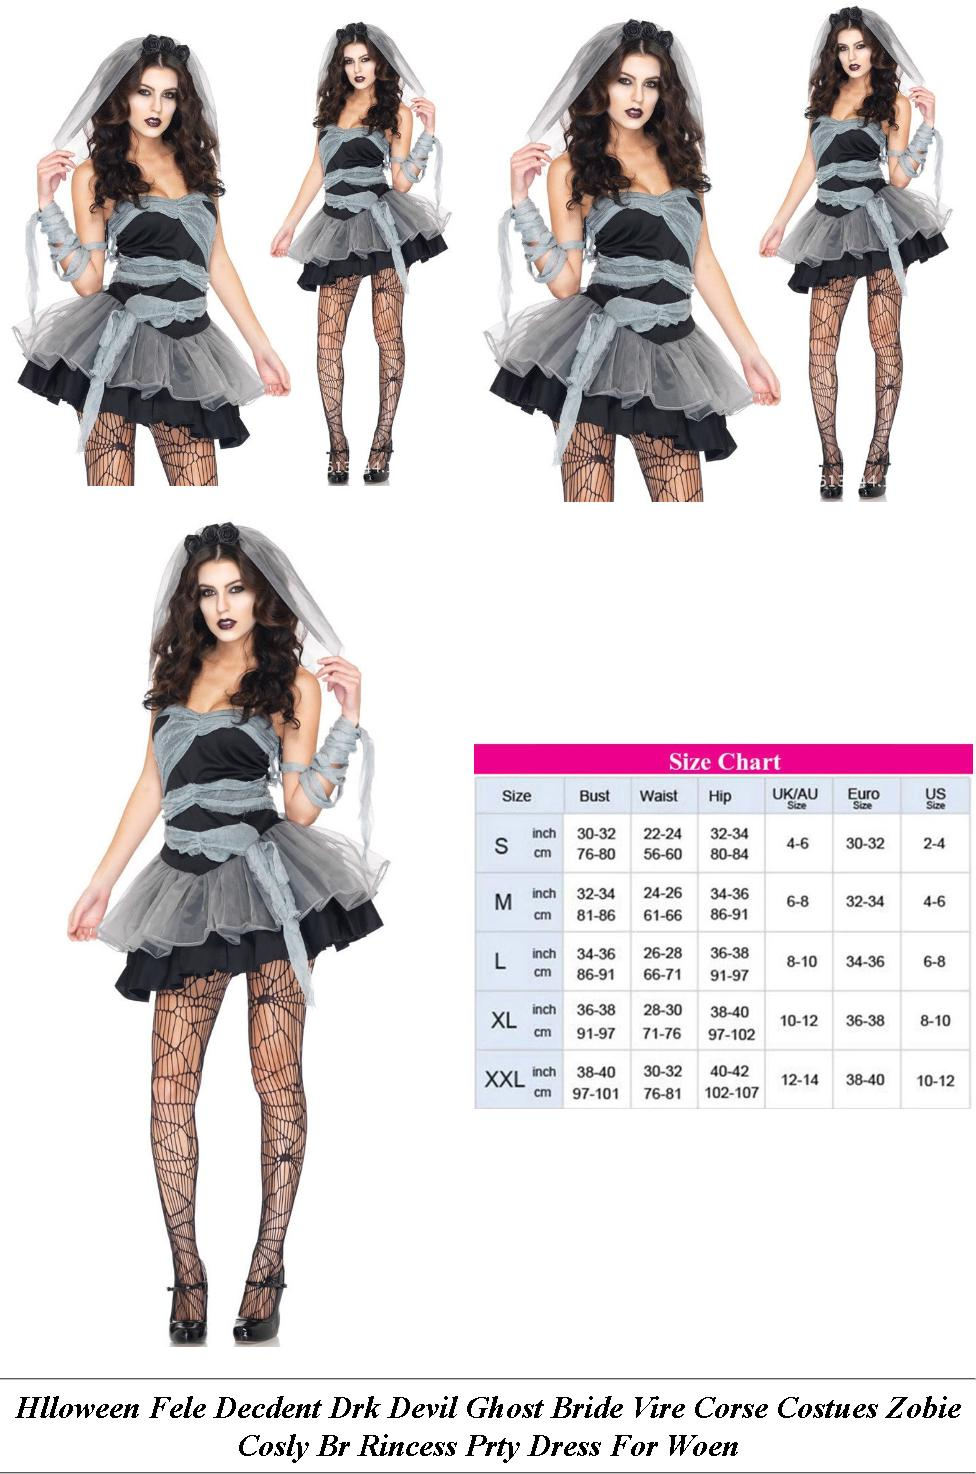 Affordale Ridesmaid Dresses Australia - Clothing Stores In Venice Fl - Satin Prom Dresses Long